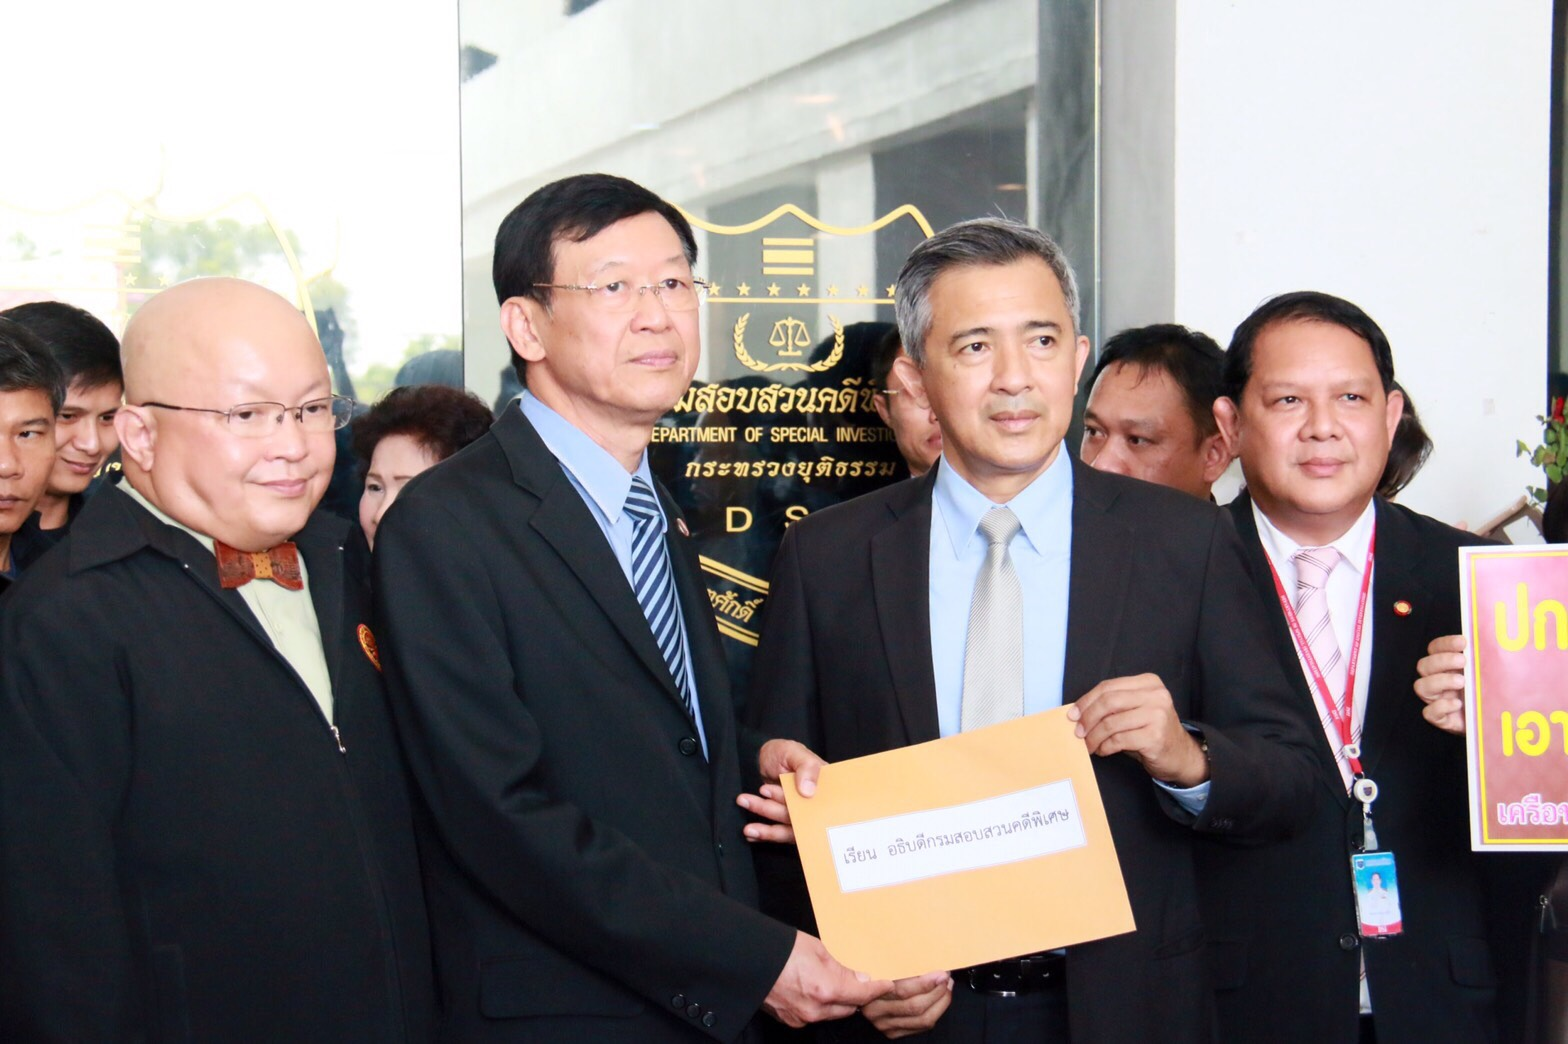 From left: Dr Mano Laohavanich and Mr Paiboon Nititawan, representing KCUC members, handing the open letter to DSI's Chief Pol Colonel Paisit Wongmuang.